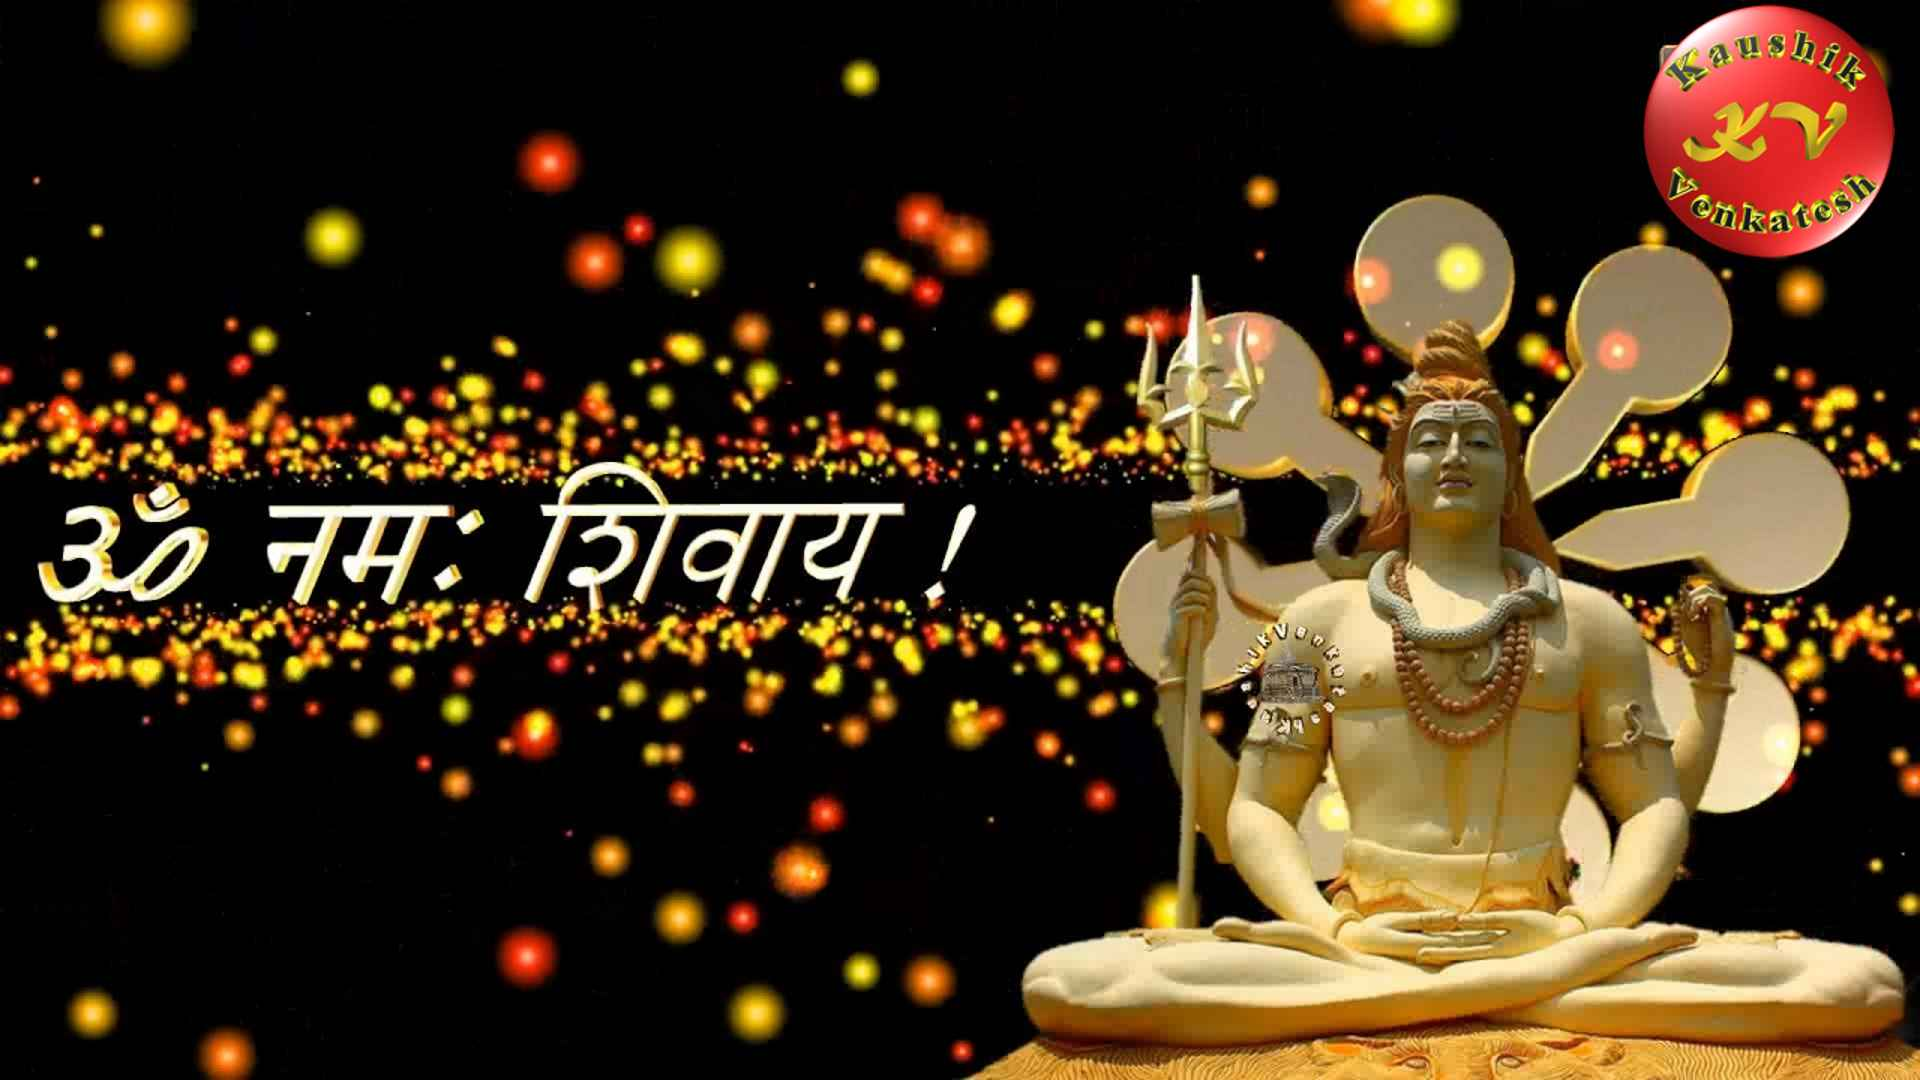 Happy Shivratri HD Images